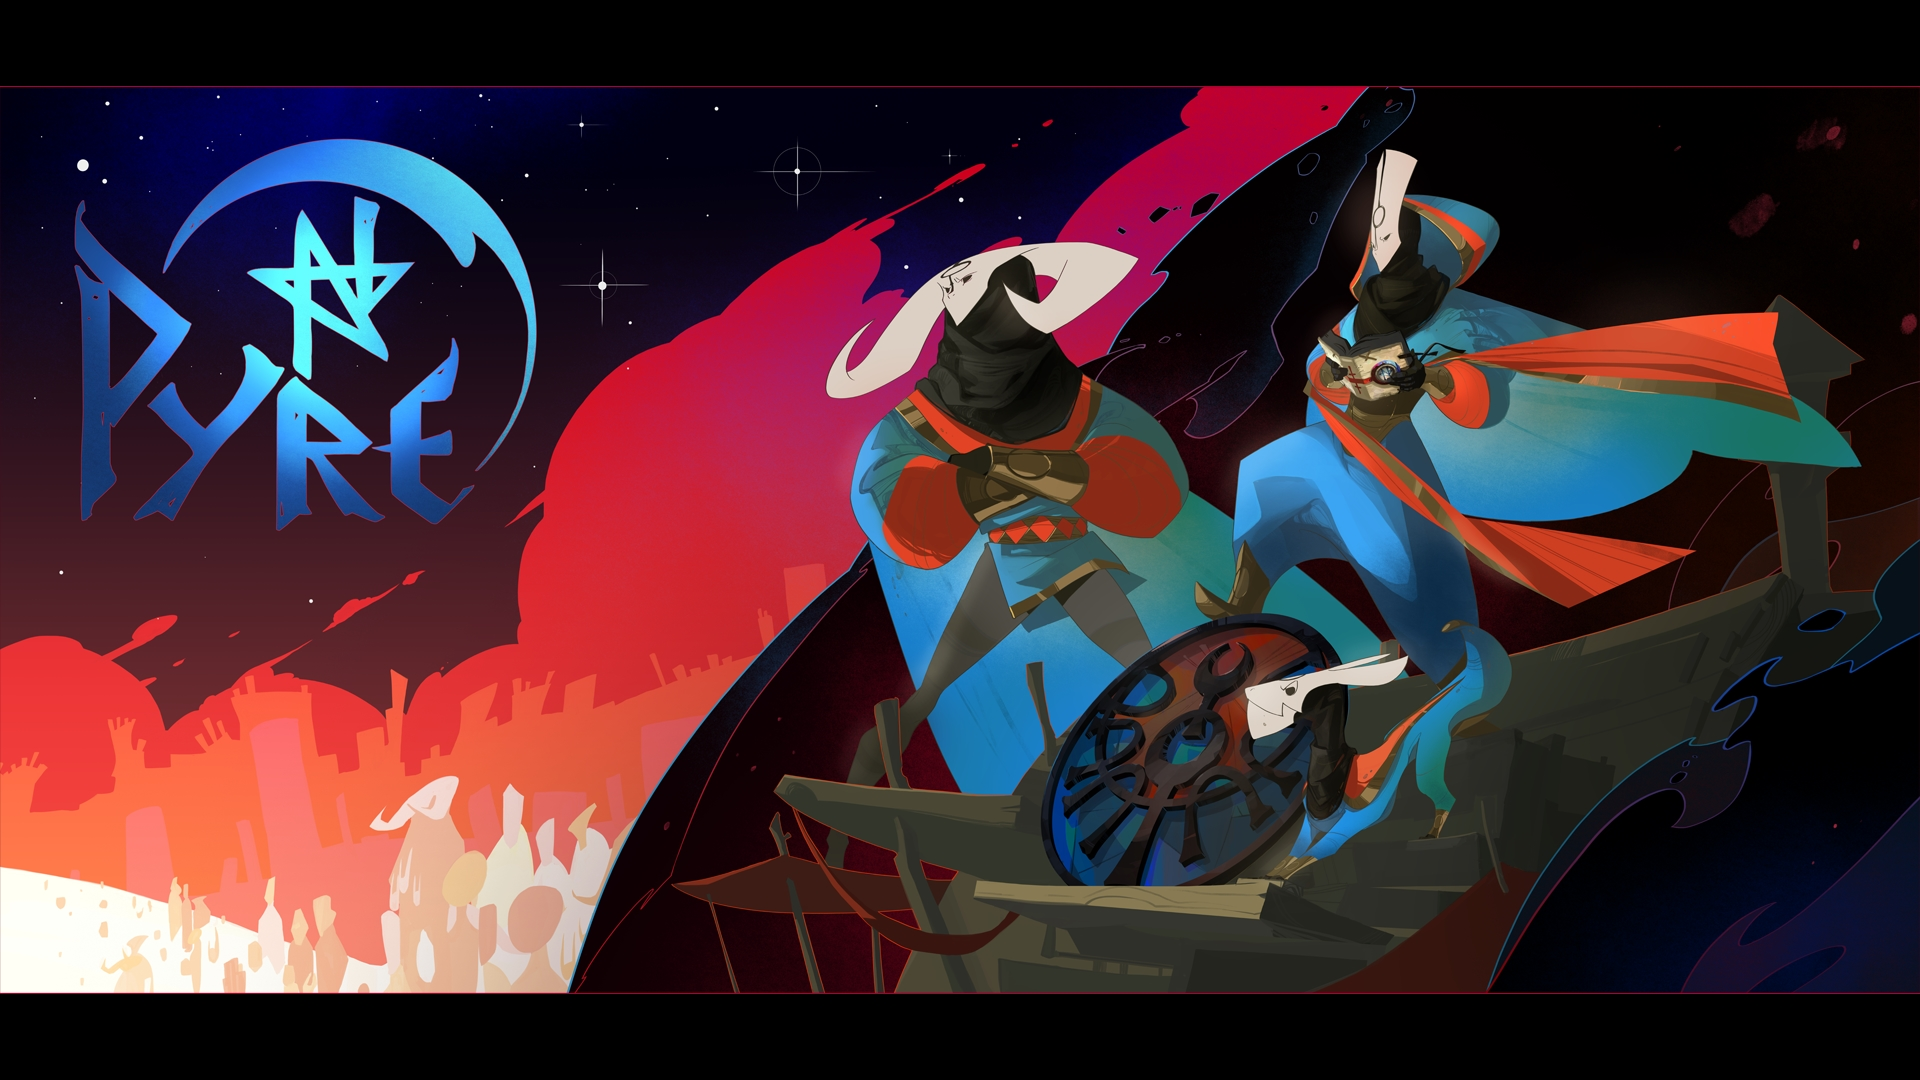 supergiant-pyre-ss-2